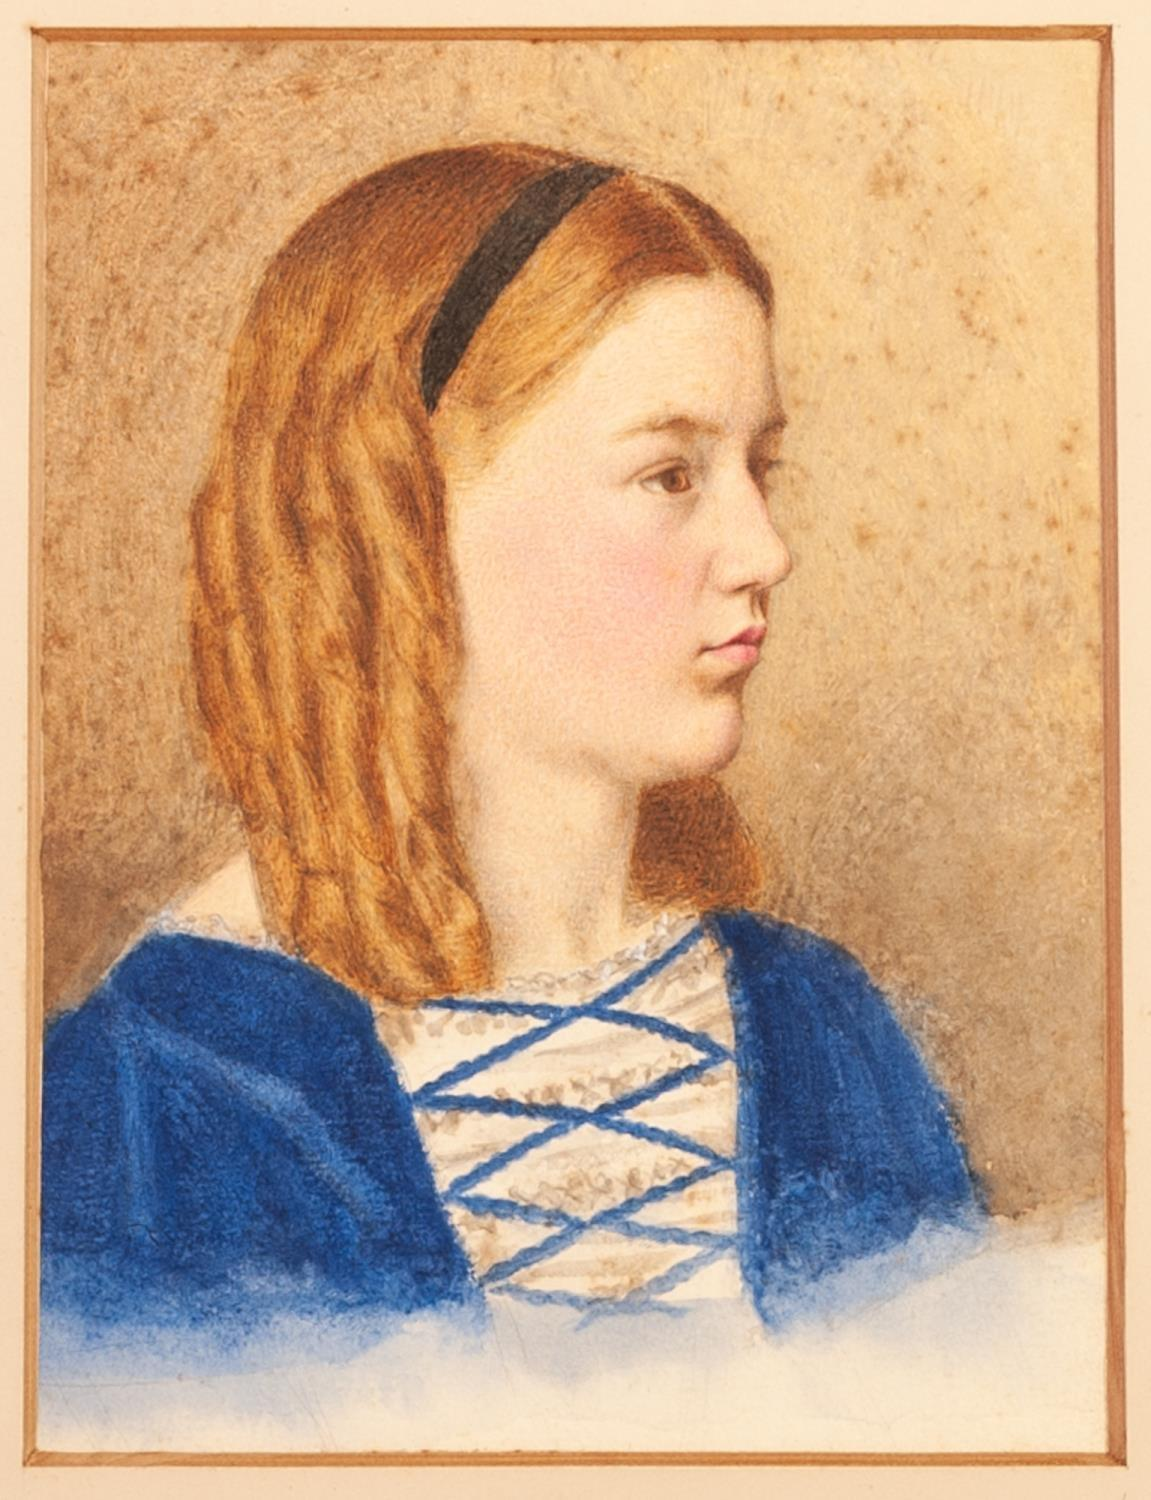 Lot 189 - UNATTRIBUTED (EARLY TWENTIETH CENTURY) PAIR OF WATERCOLOUR DRAWINGS Female bust portraits, one